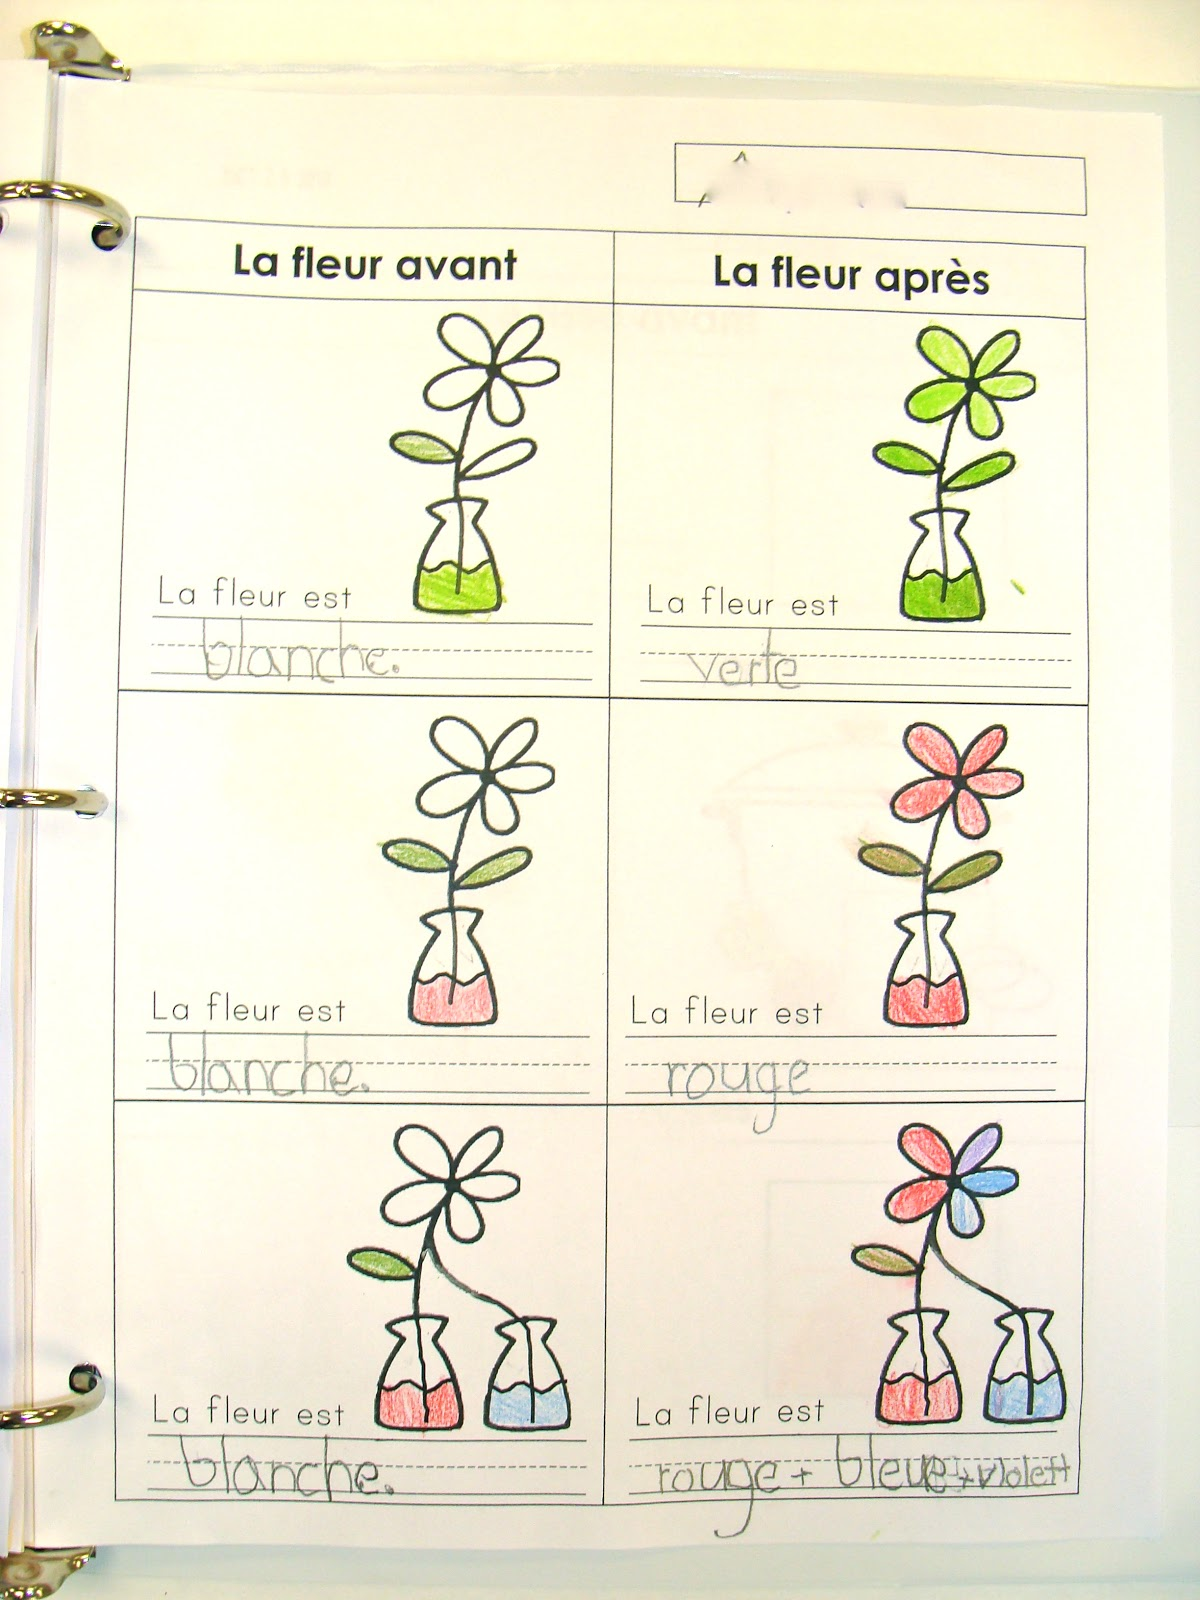 Madame belle feuille les couleurs for How to dye flowers using food coloring